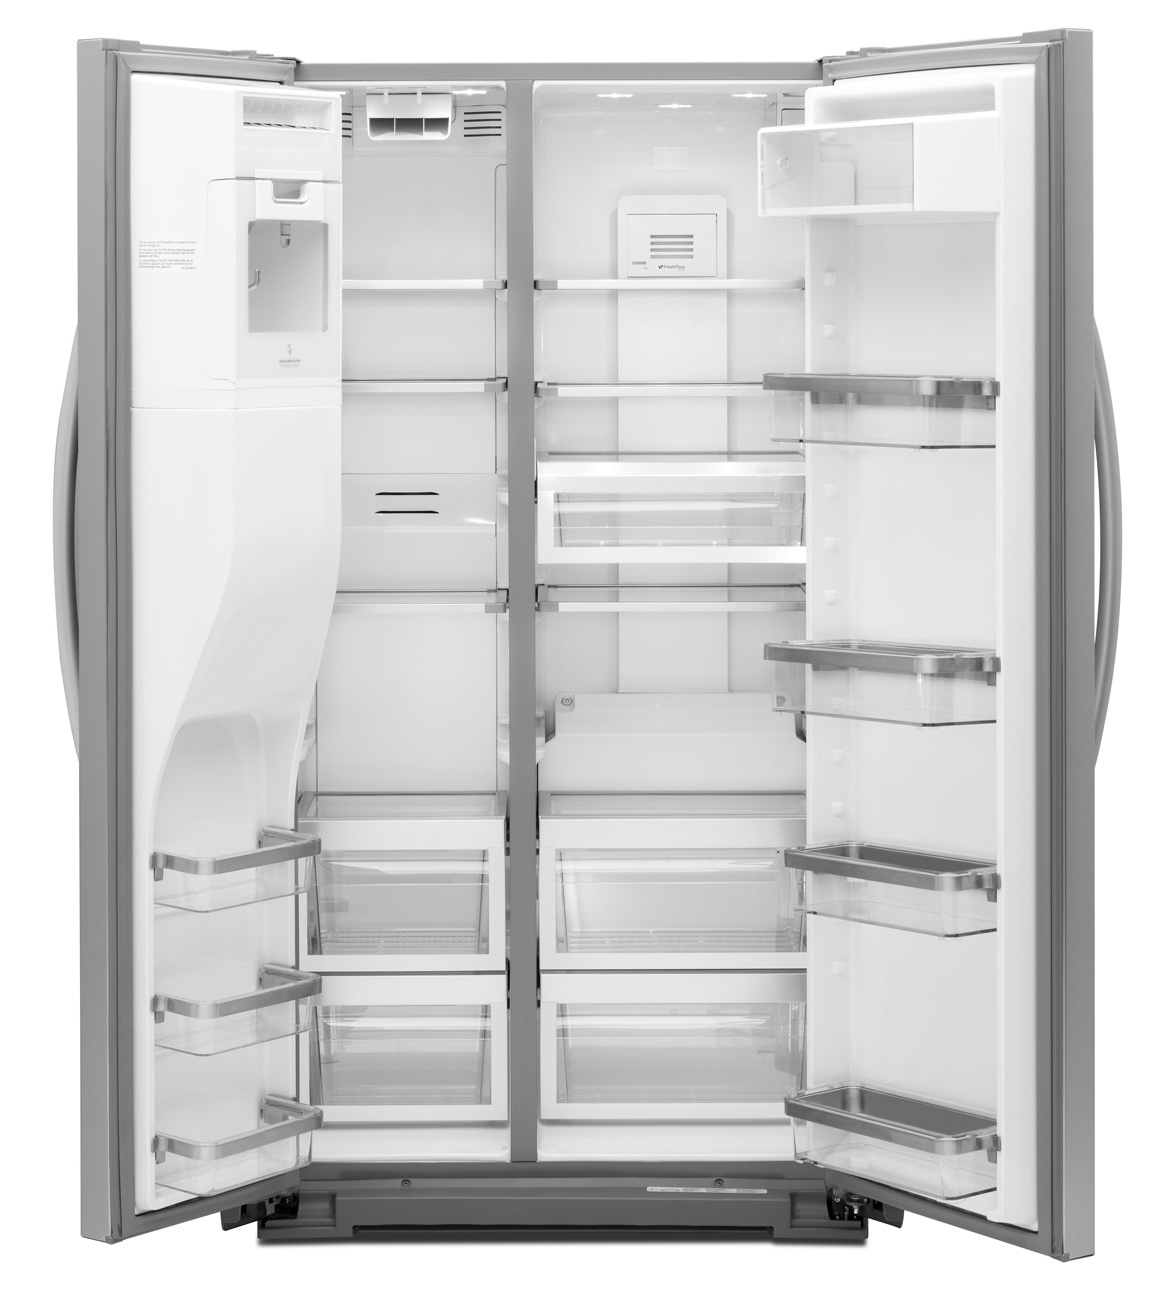 Shop Kitchenaid 24 8 Cu Ft Side By Side Refrigerator With: St. Louis Appliance Outlet